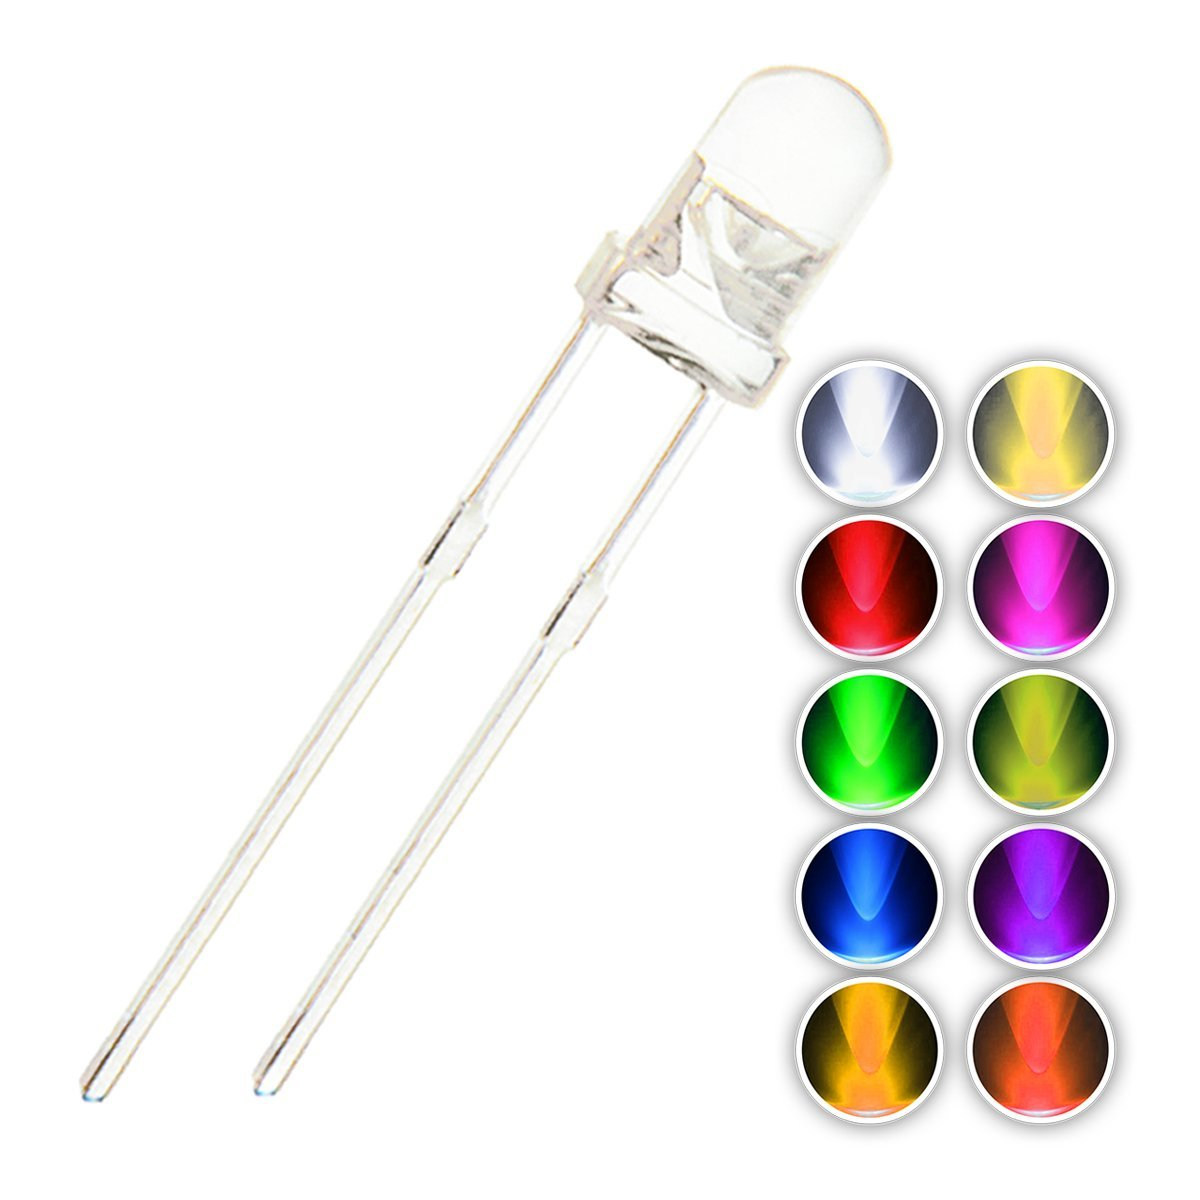 Back To Search Resultselectronic Components & Supplies Diodes 100pcs Transparent Cover Led 5mm 3mm Red Yellow Green Blue Warm White Purple Light Emitting Diode High Bright F3 F5 Quality Bead